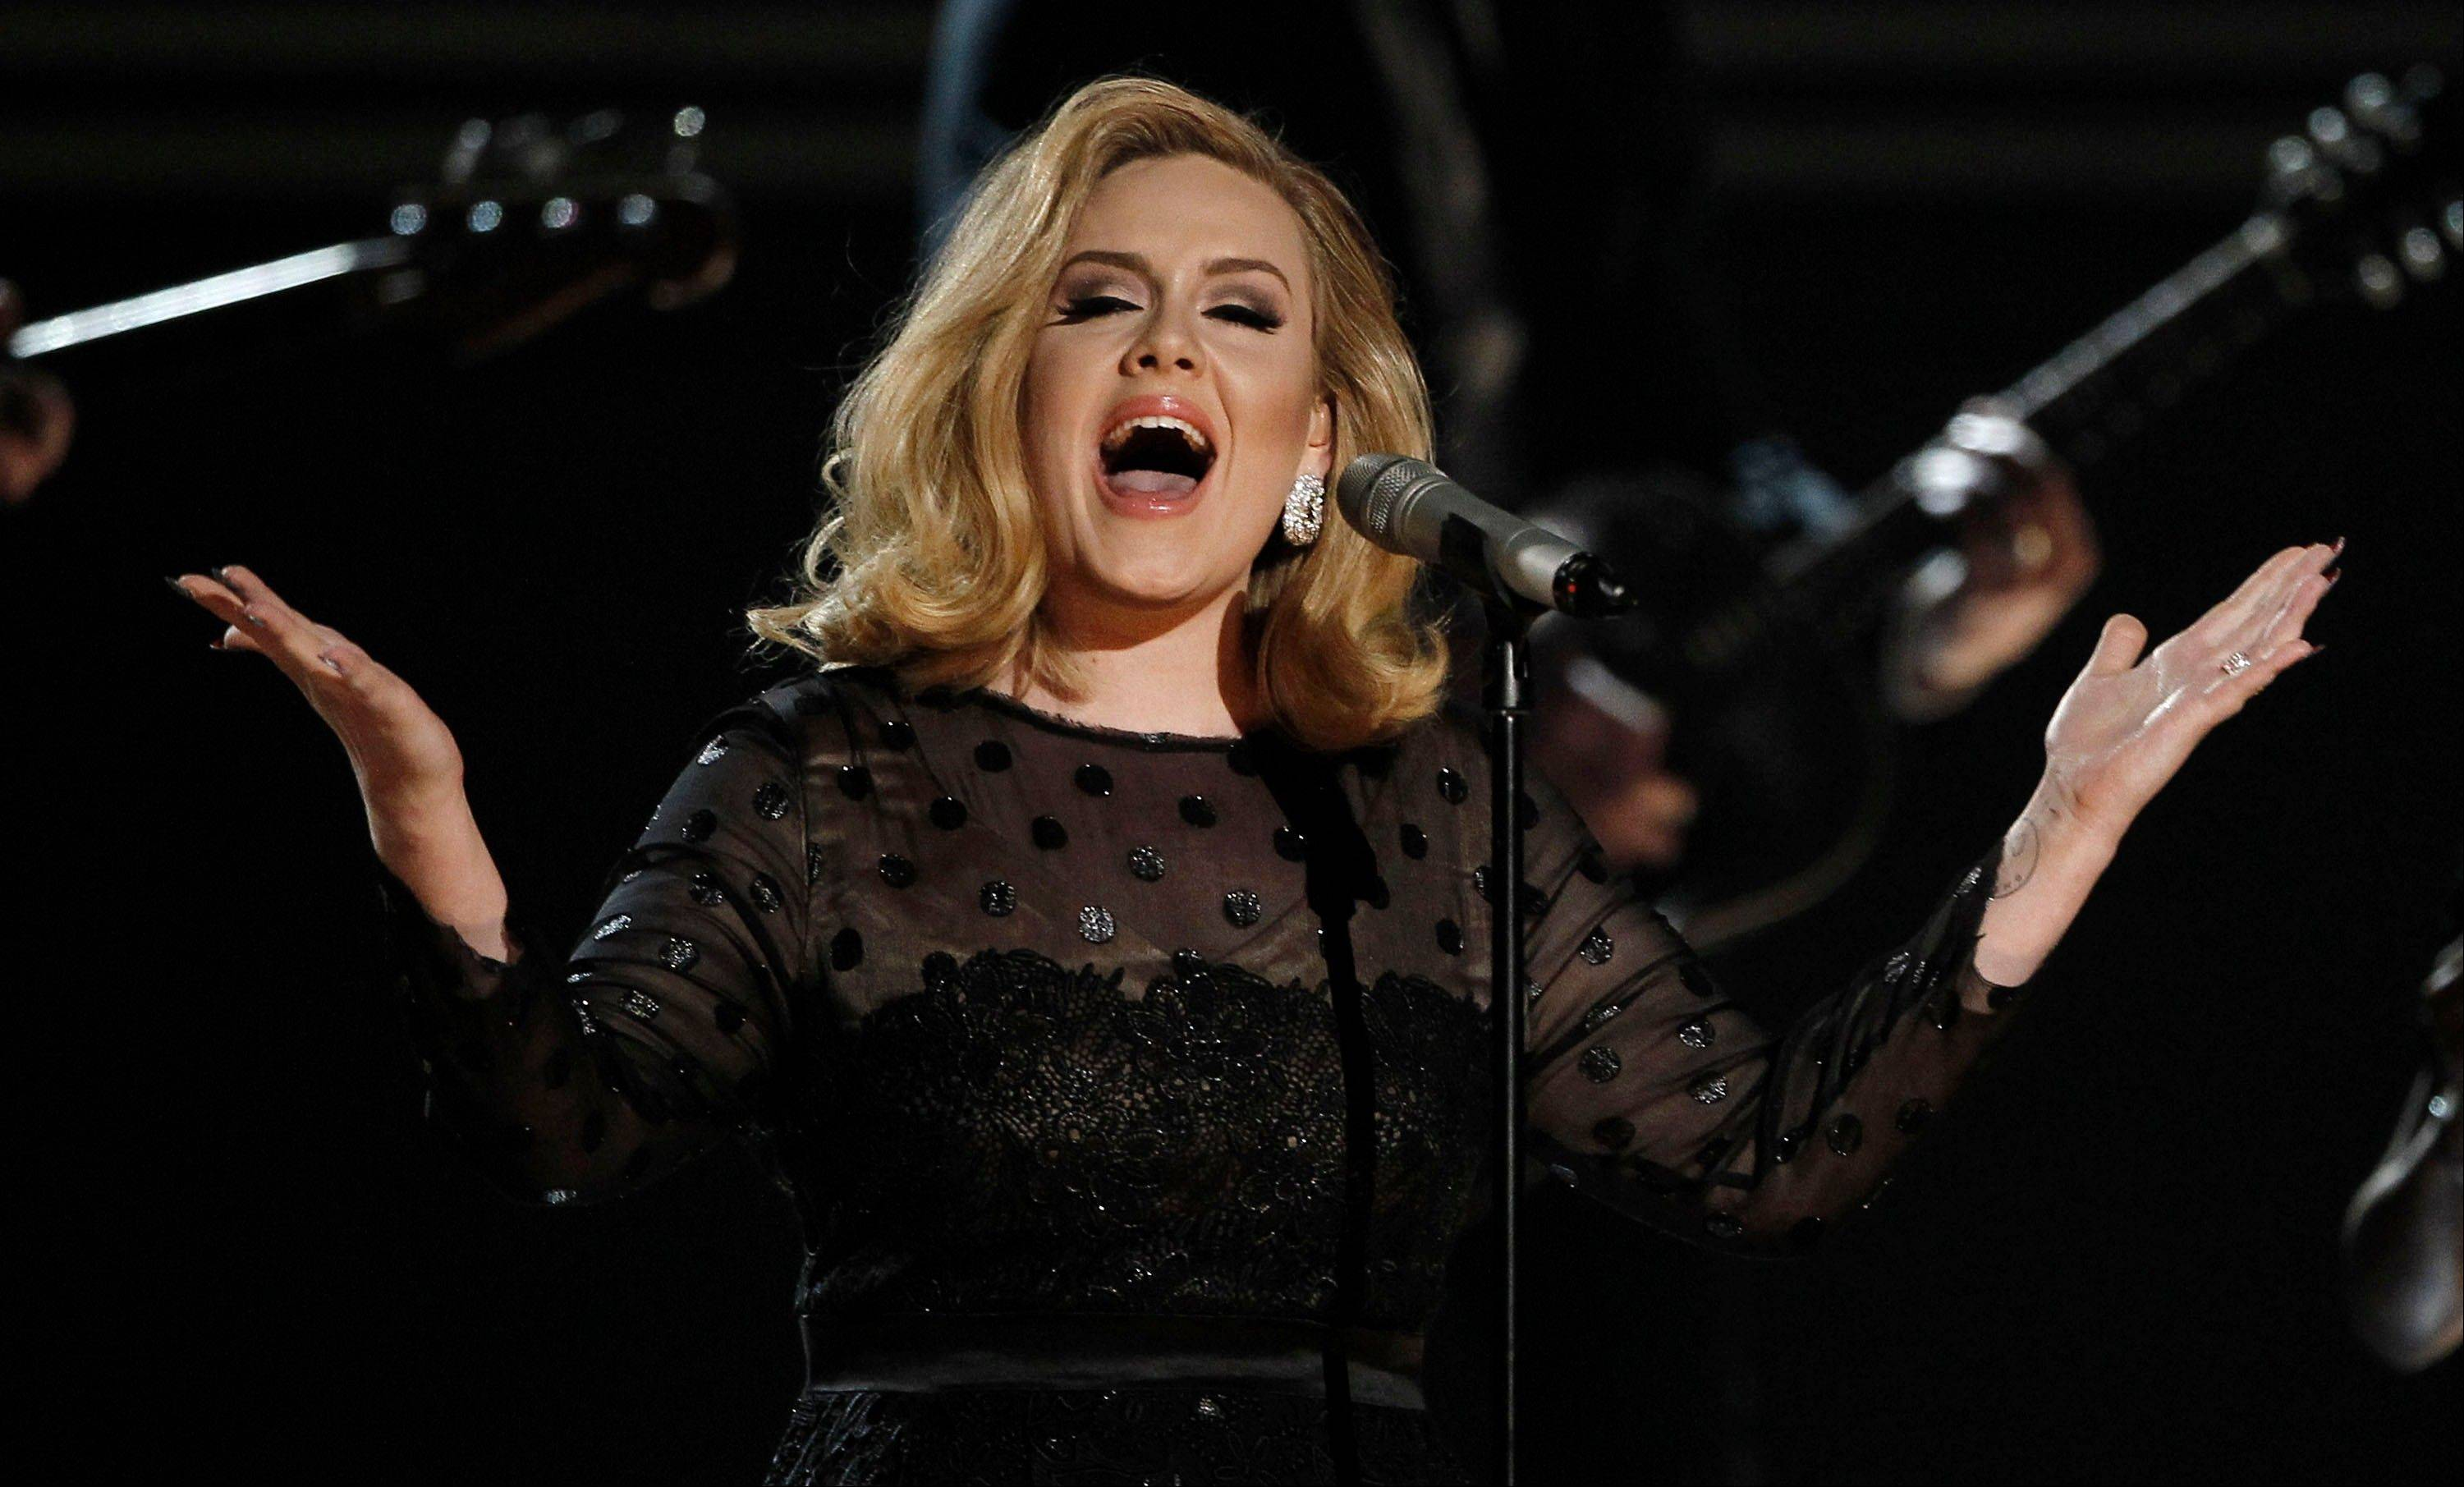 Adele performs during the 54th annual Grammy Awards Sunday in Los Angeles.